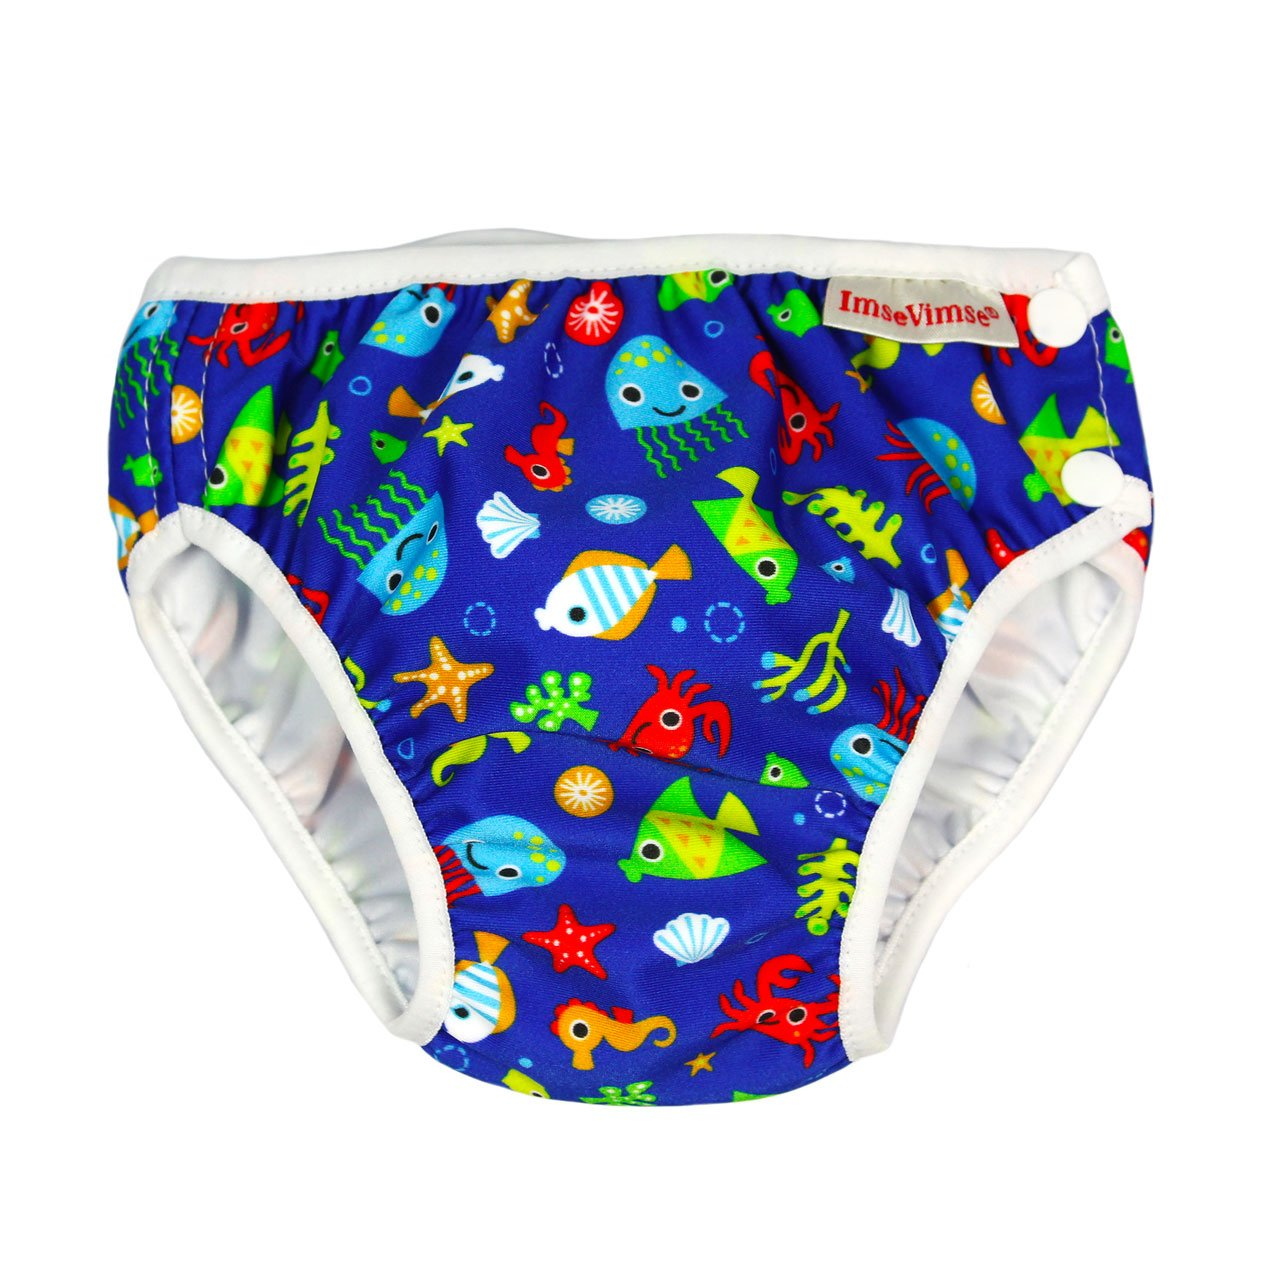 Imse Vimse Reusable Swim Nappies Imse Vimse Nappies Blue Sea Life / Newborn (4-6kg) at Little Earth Nest Eco Shop